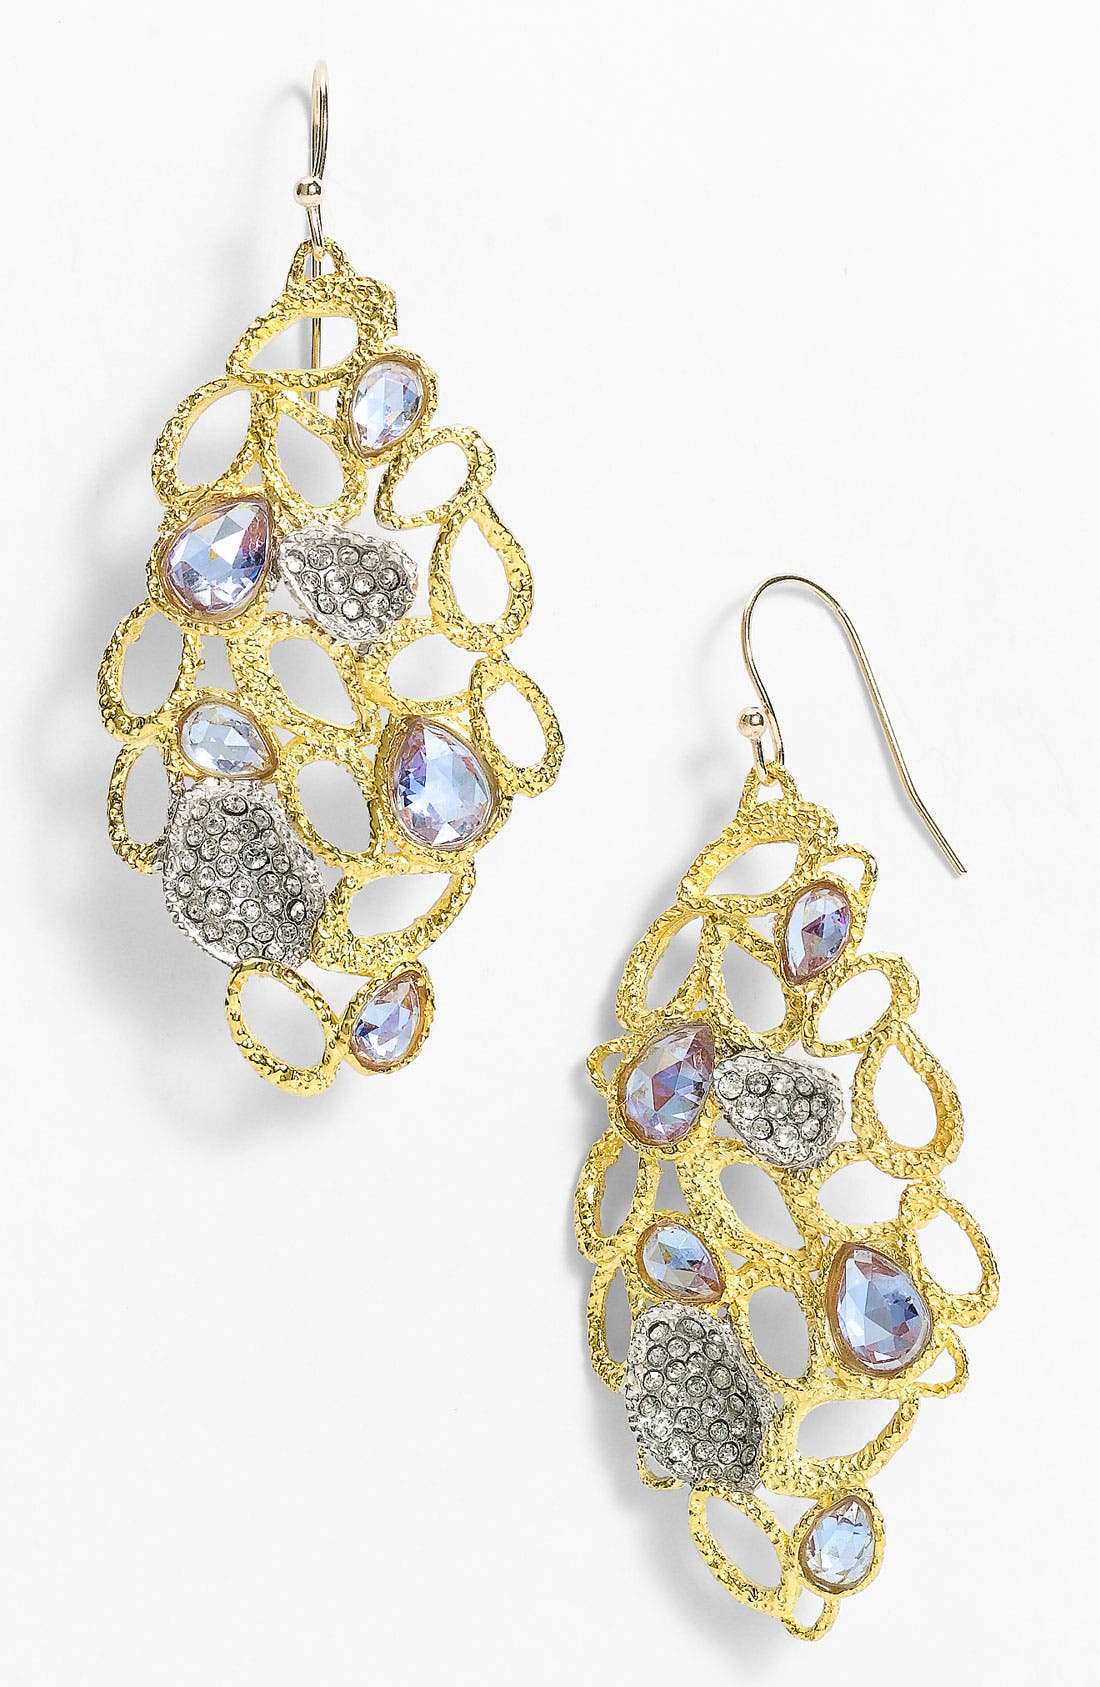 Alternate Image 1 Selected - Alexis Bittar 'Elements' Pavé Accent Drop Earrings (Nordstrom Exclusive)